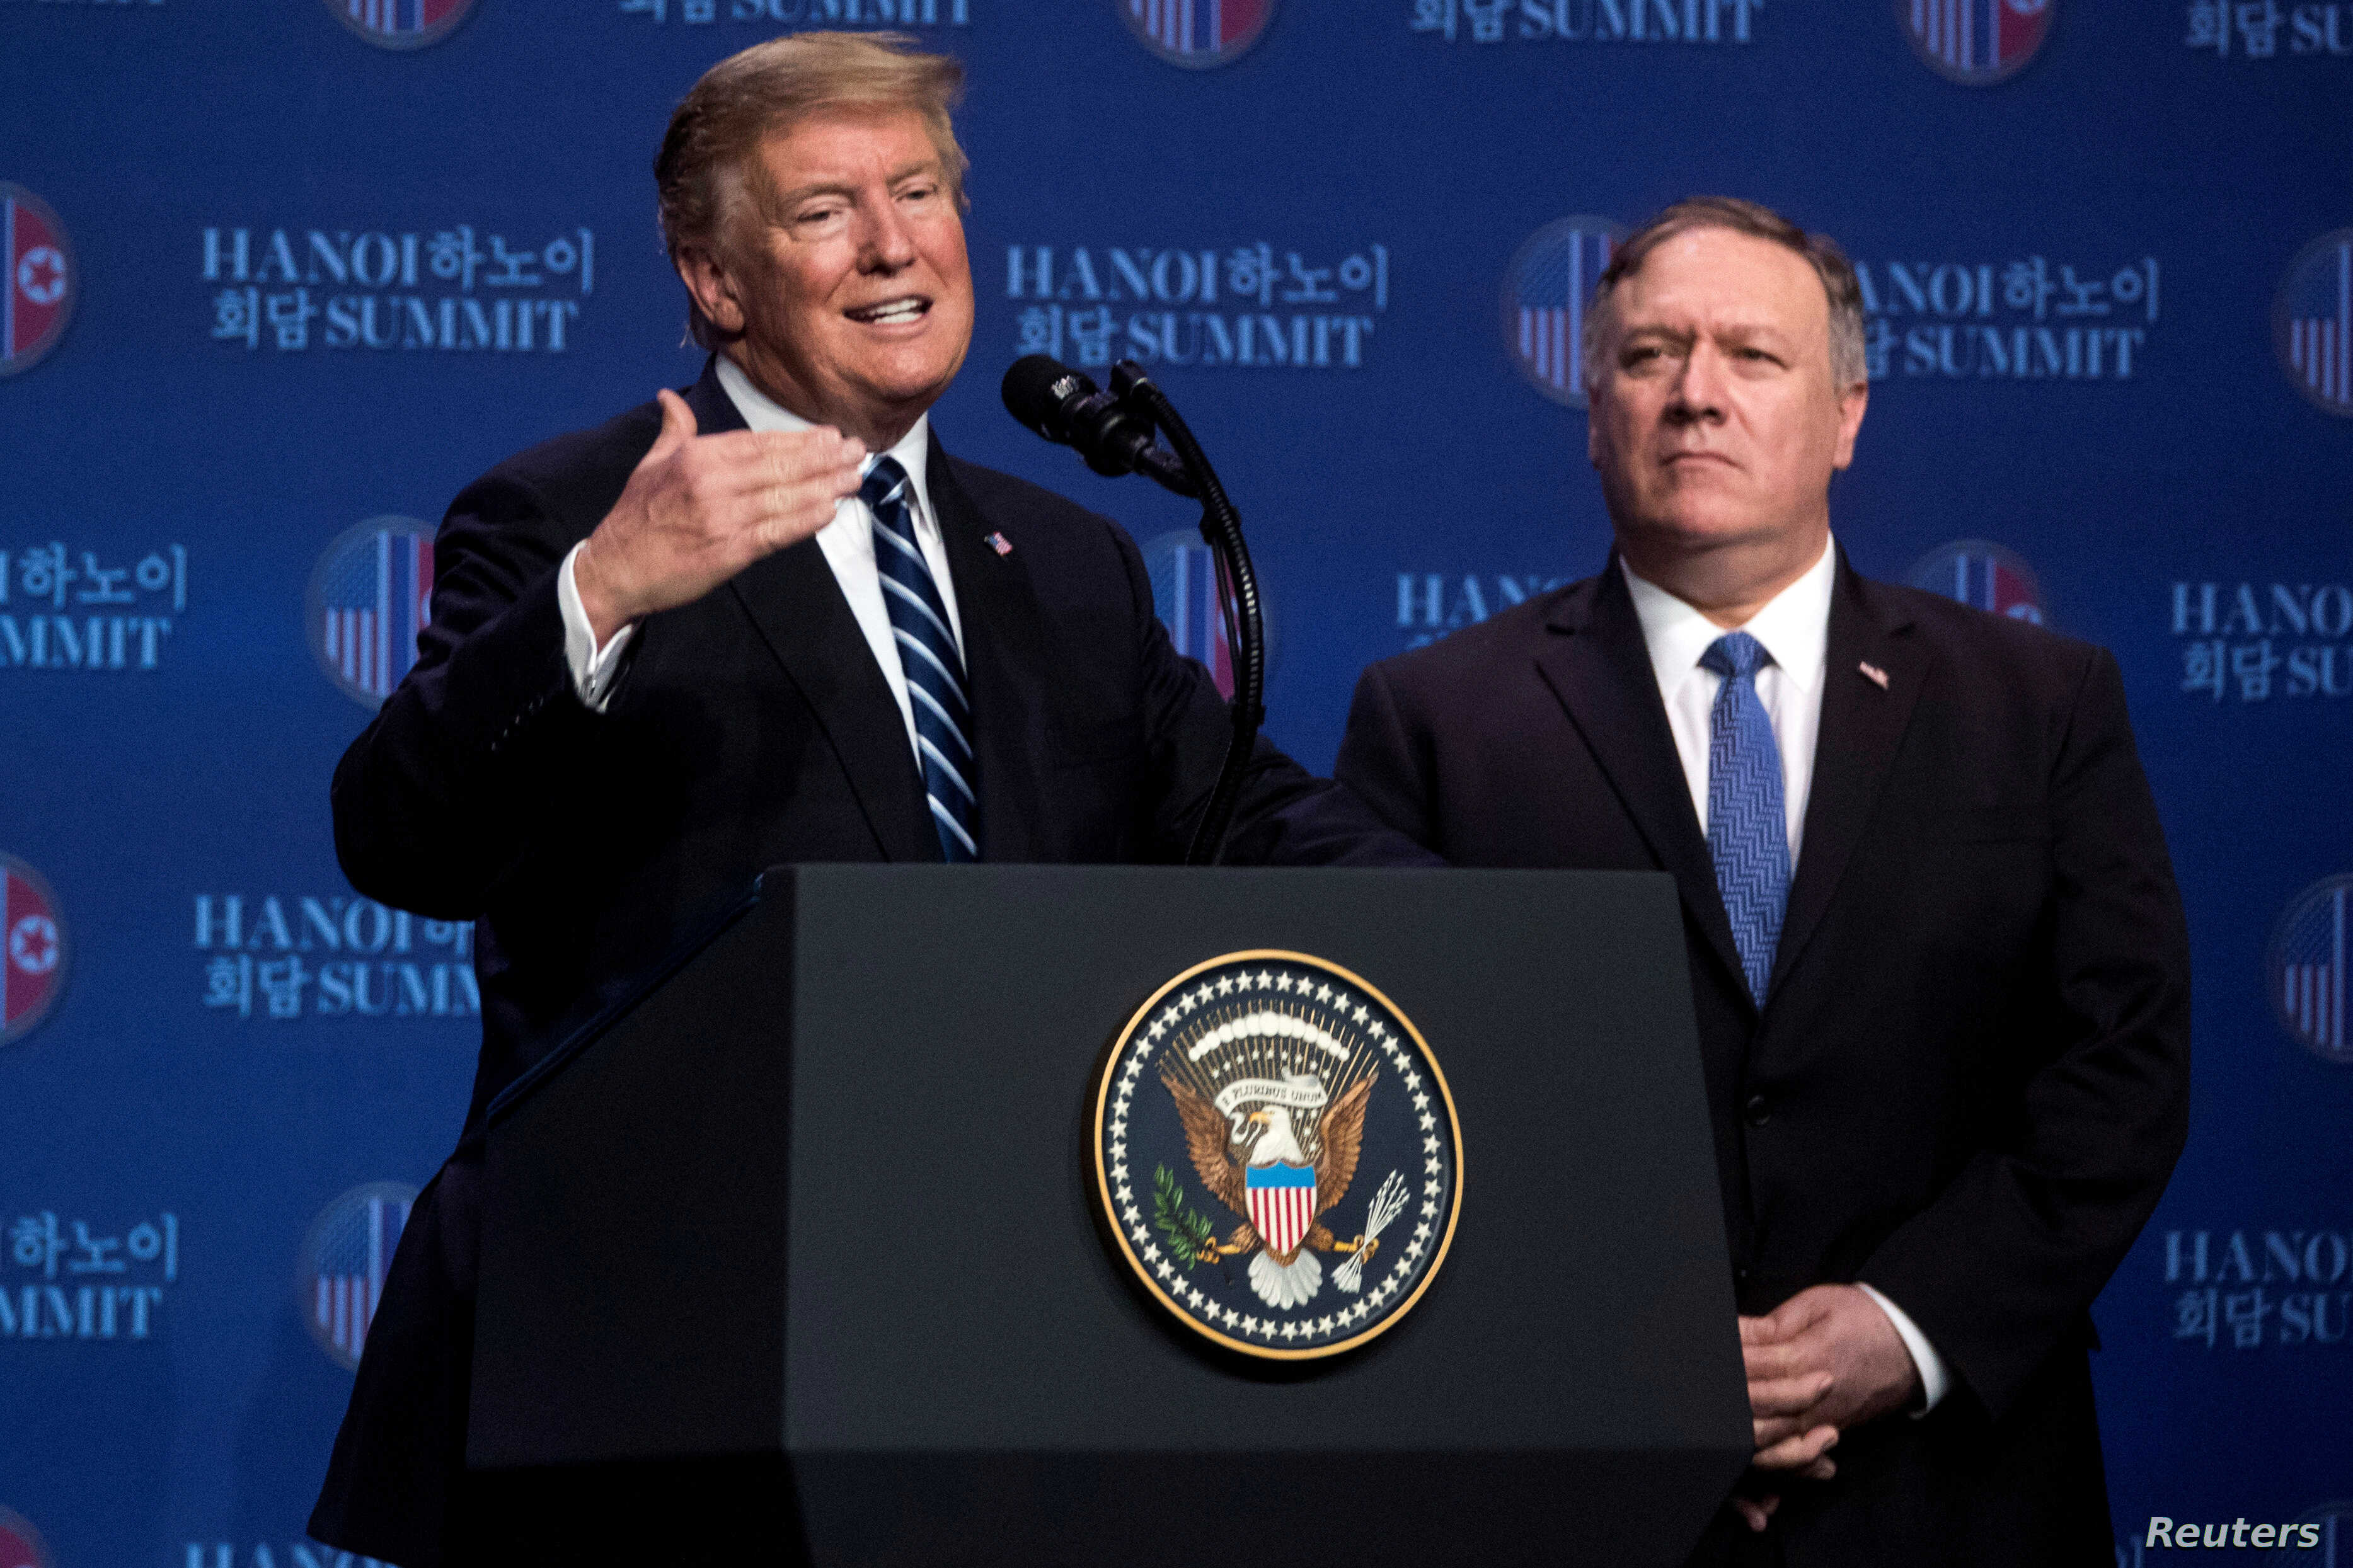 U.S. President Donald Trump accompanied by U.S. Secretary of State Mike Pompeo speaks at a news conference at the JW Marriott Hanoi, following talks with North Korean leader Kim Jong Un in Hanoi, Vietnam, Feb. 28, 2019.